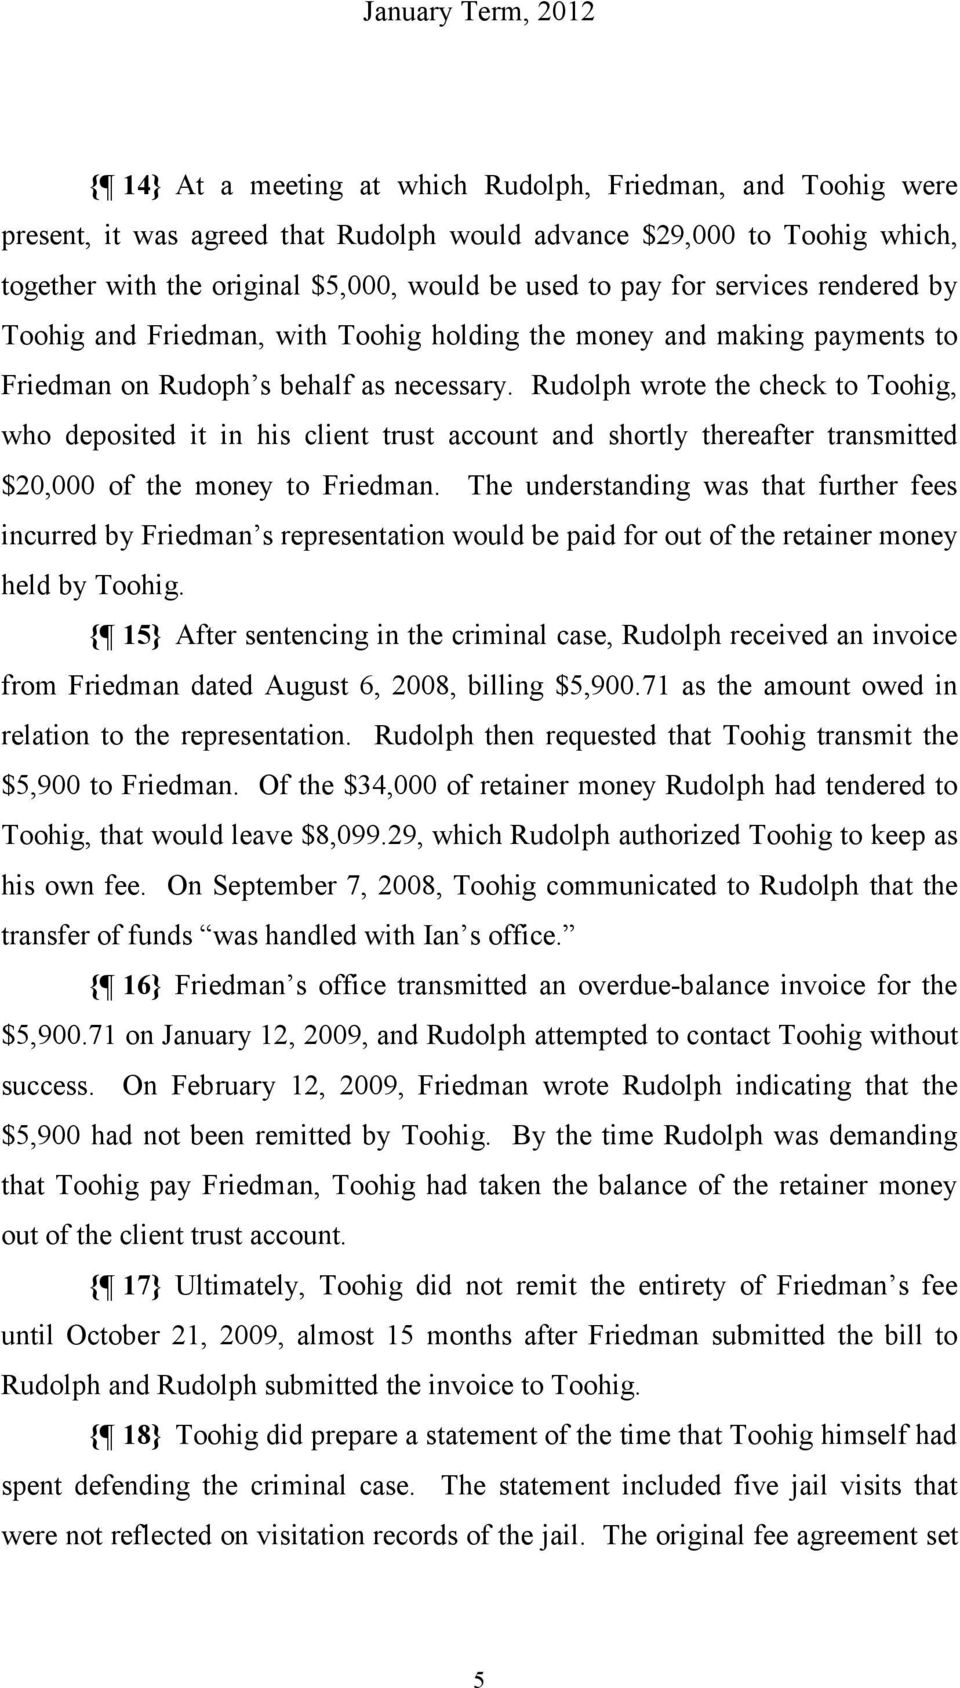 Rudolph wrote the check to Toohig, who deposited it in his client trust account and shortly thereafter transmitted $20,000 of the money to Friedman.